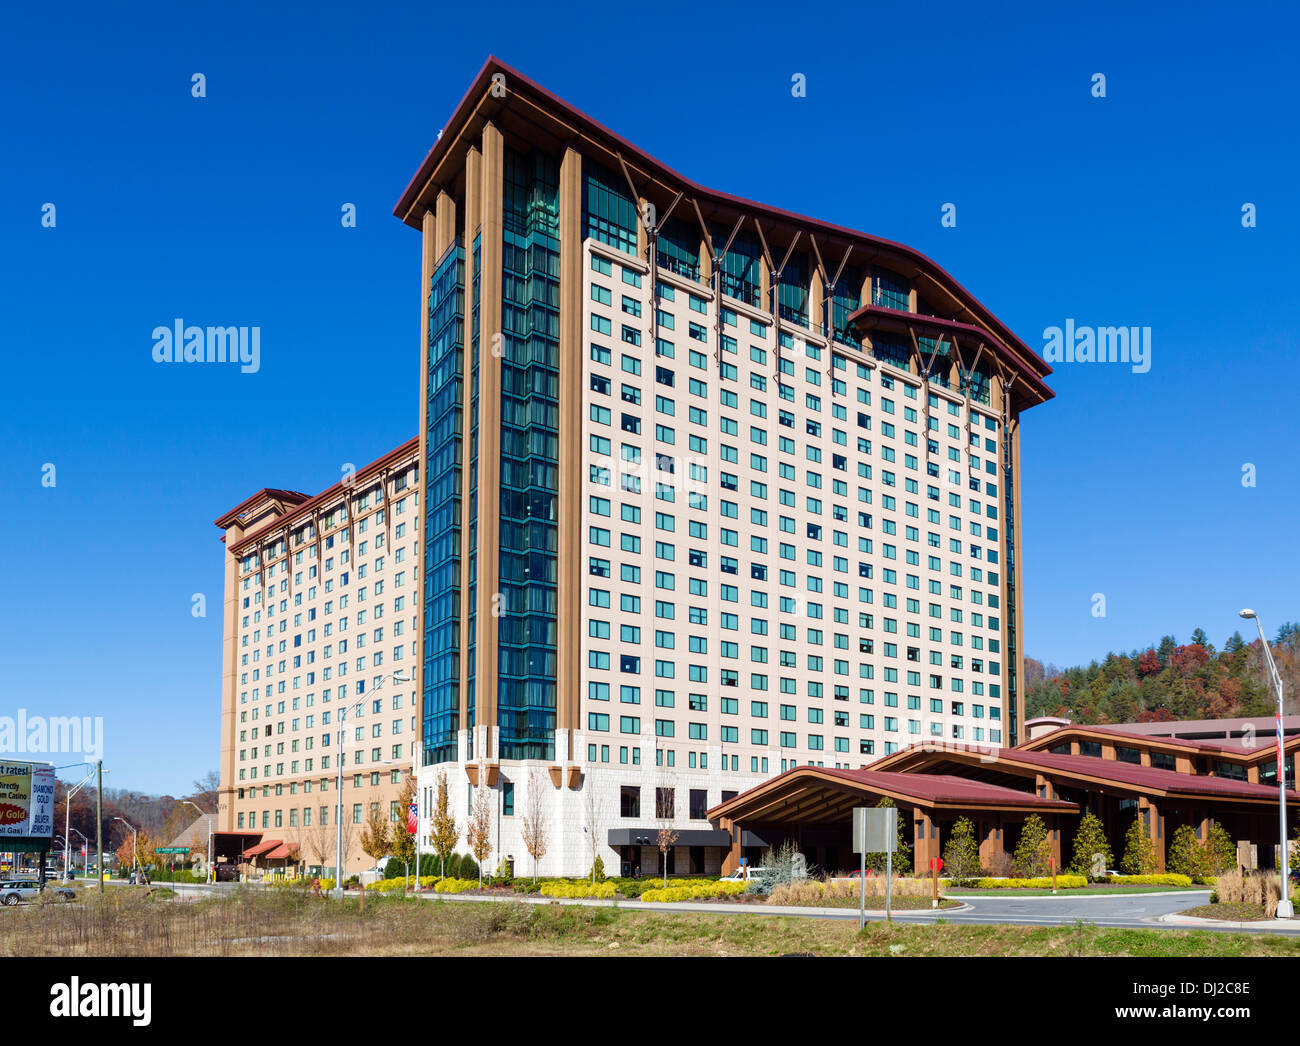 Cherokee reservation casino are there casinos in tennis